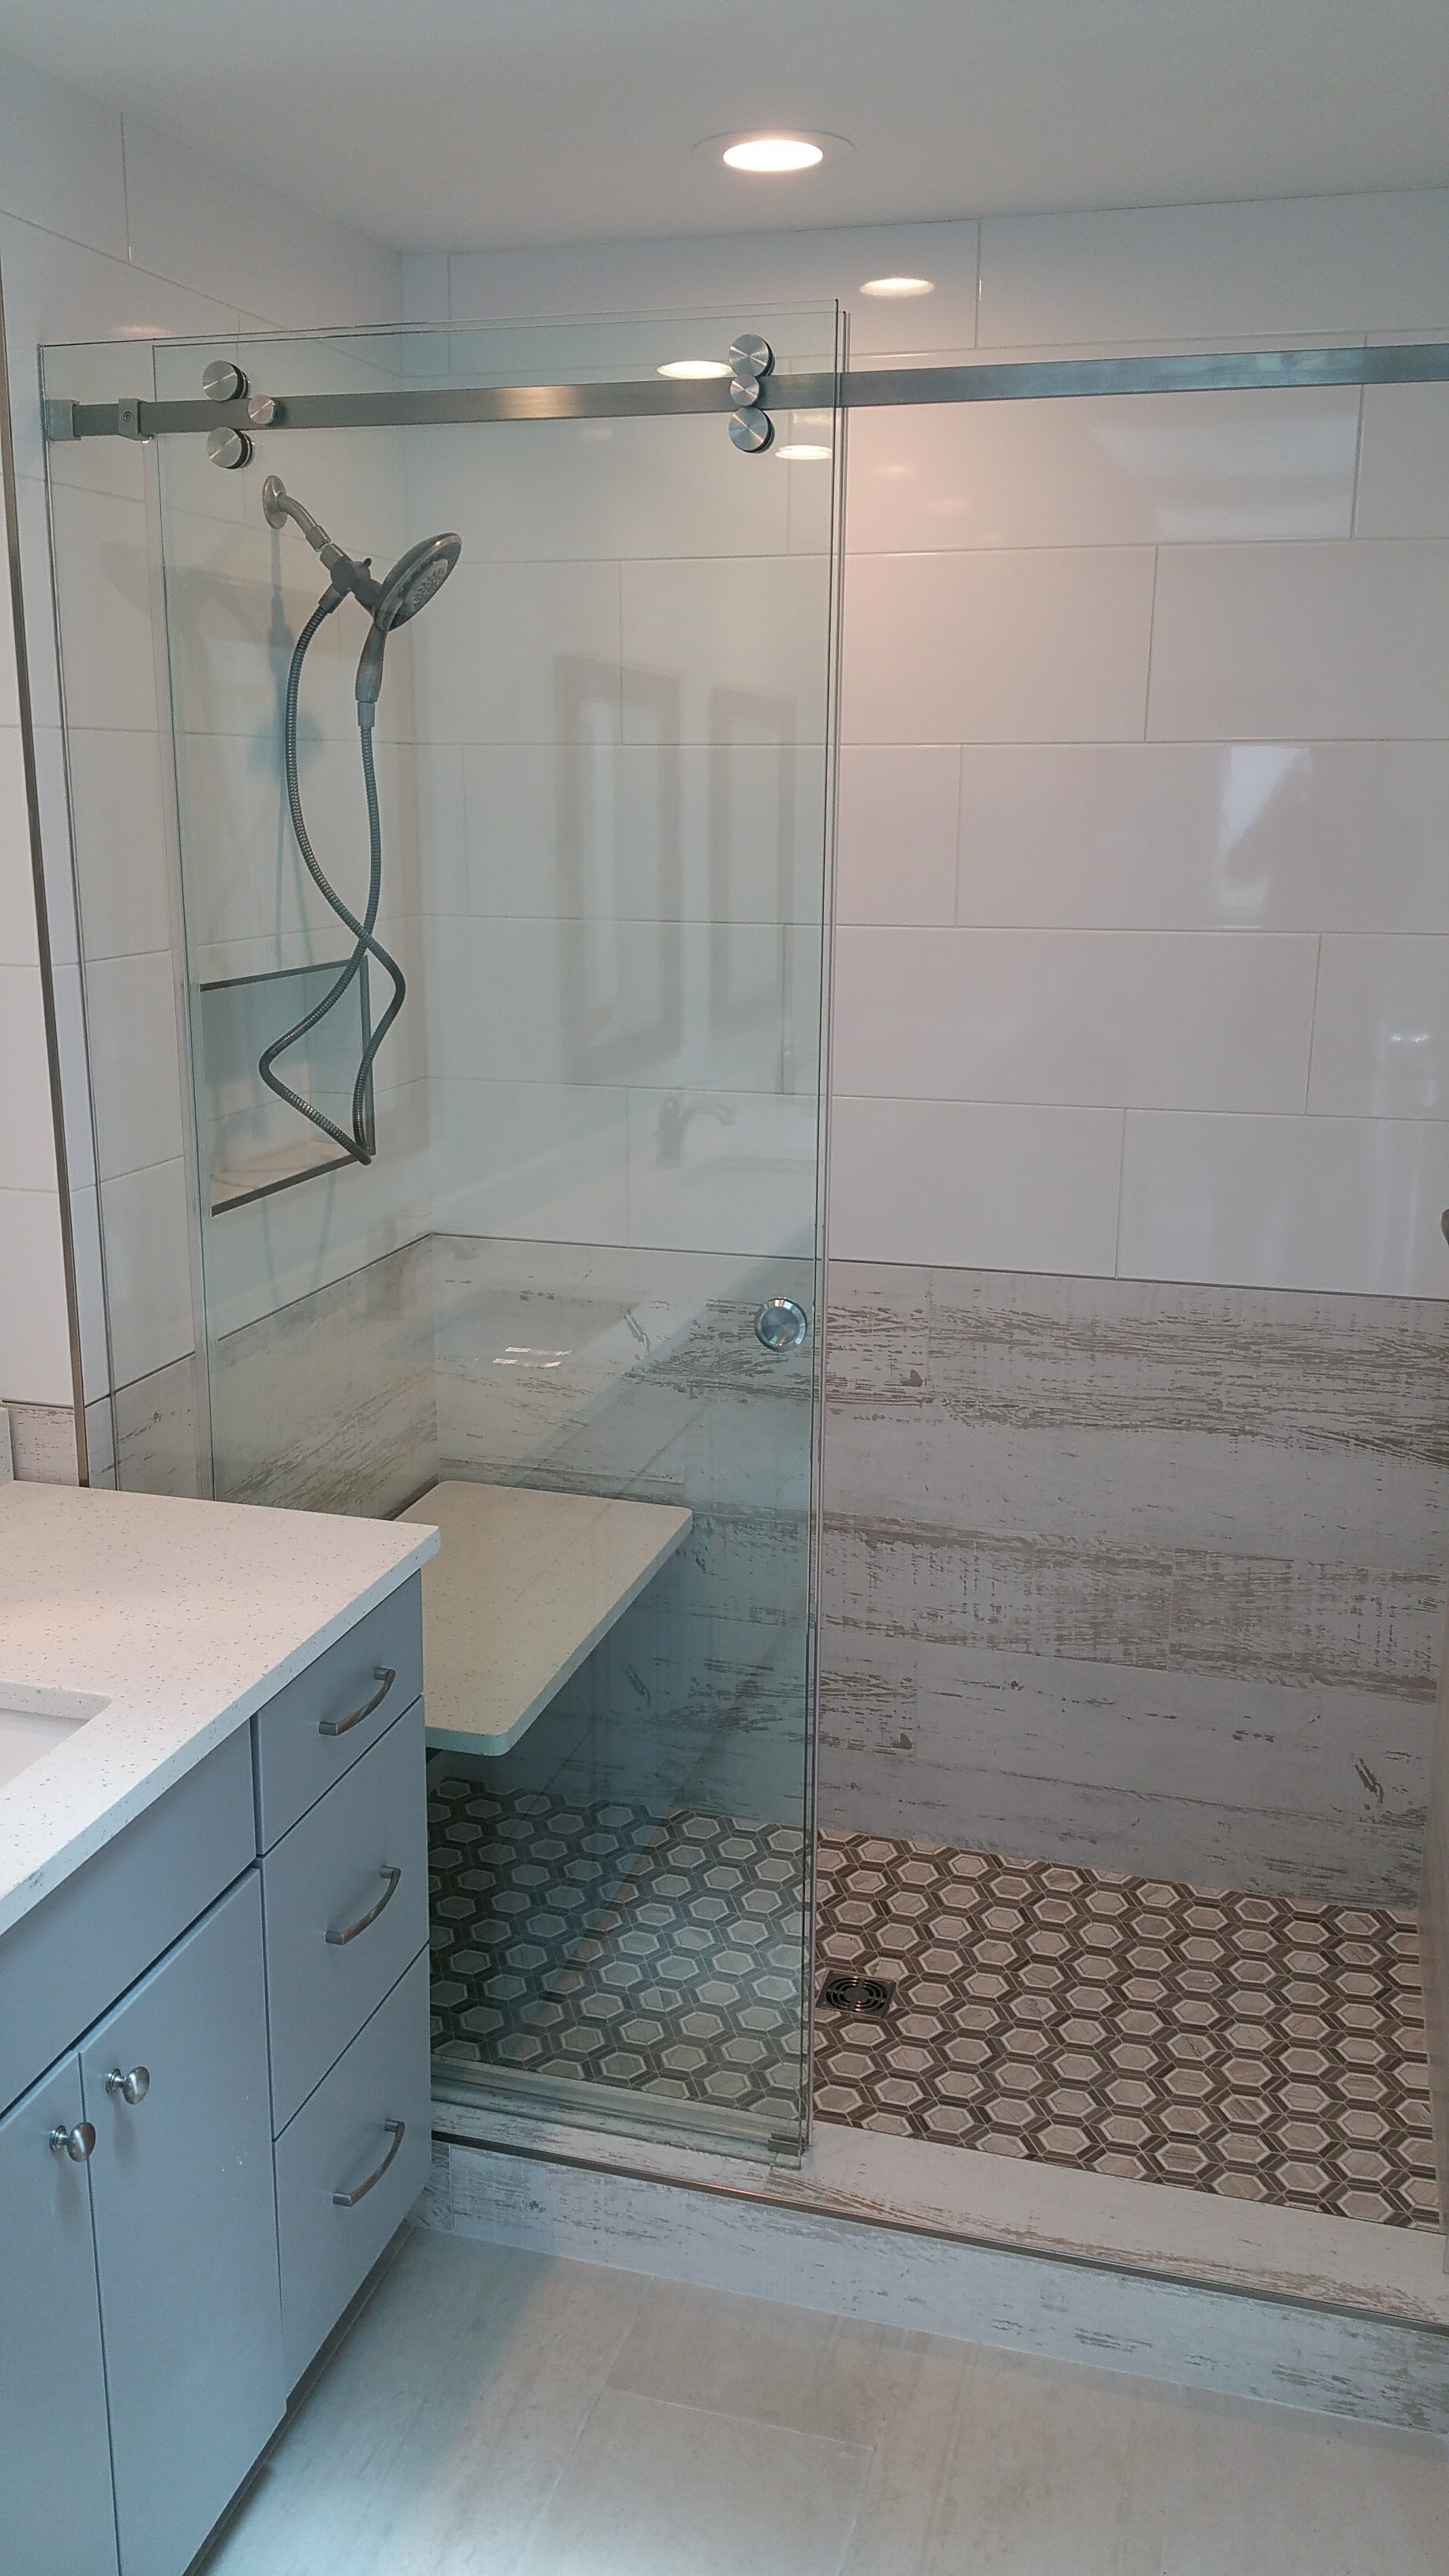 Shower Remodel and bench installation from Relo Interior Services